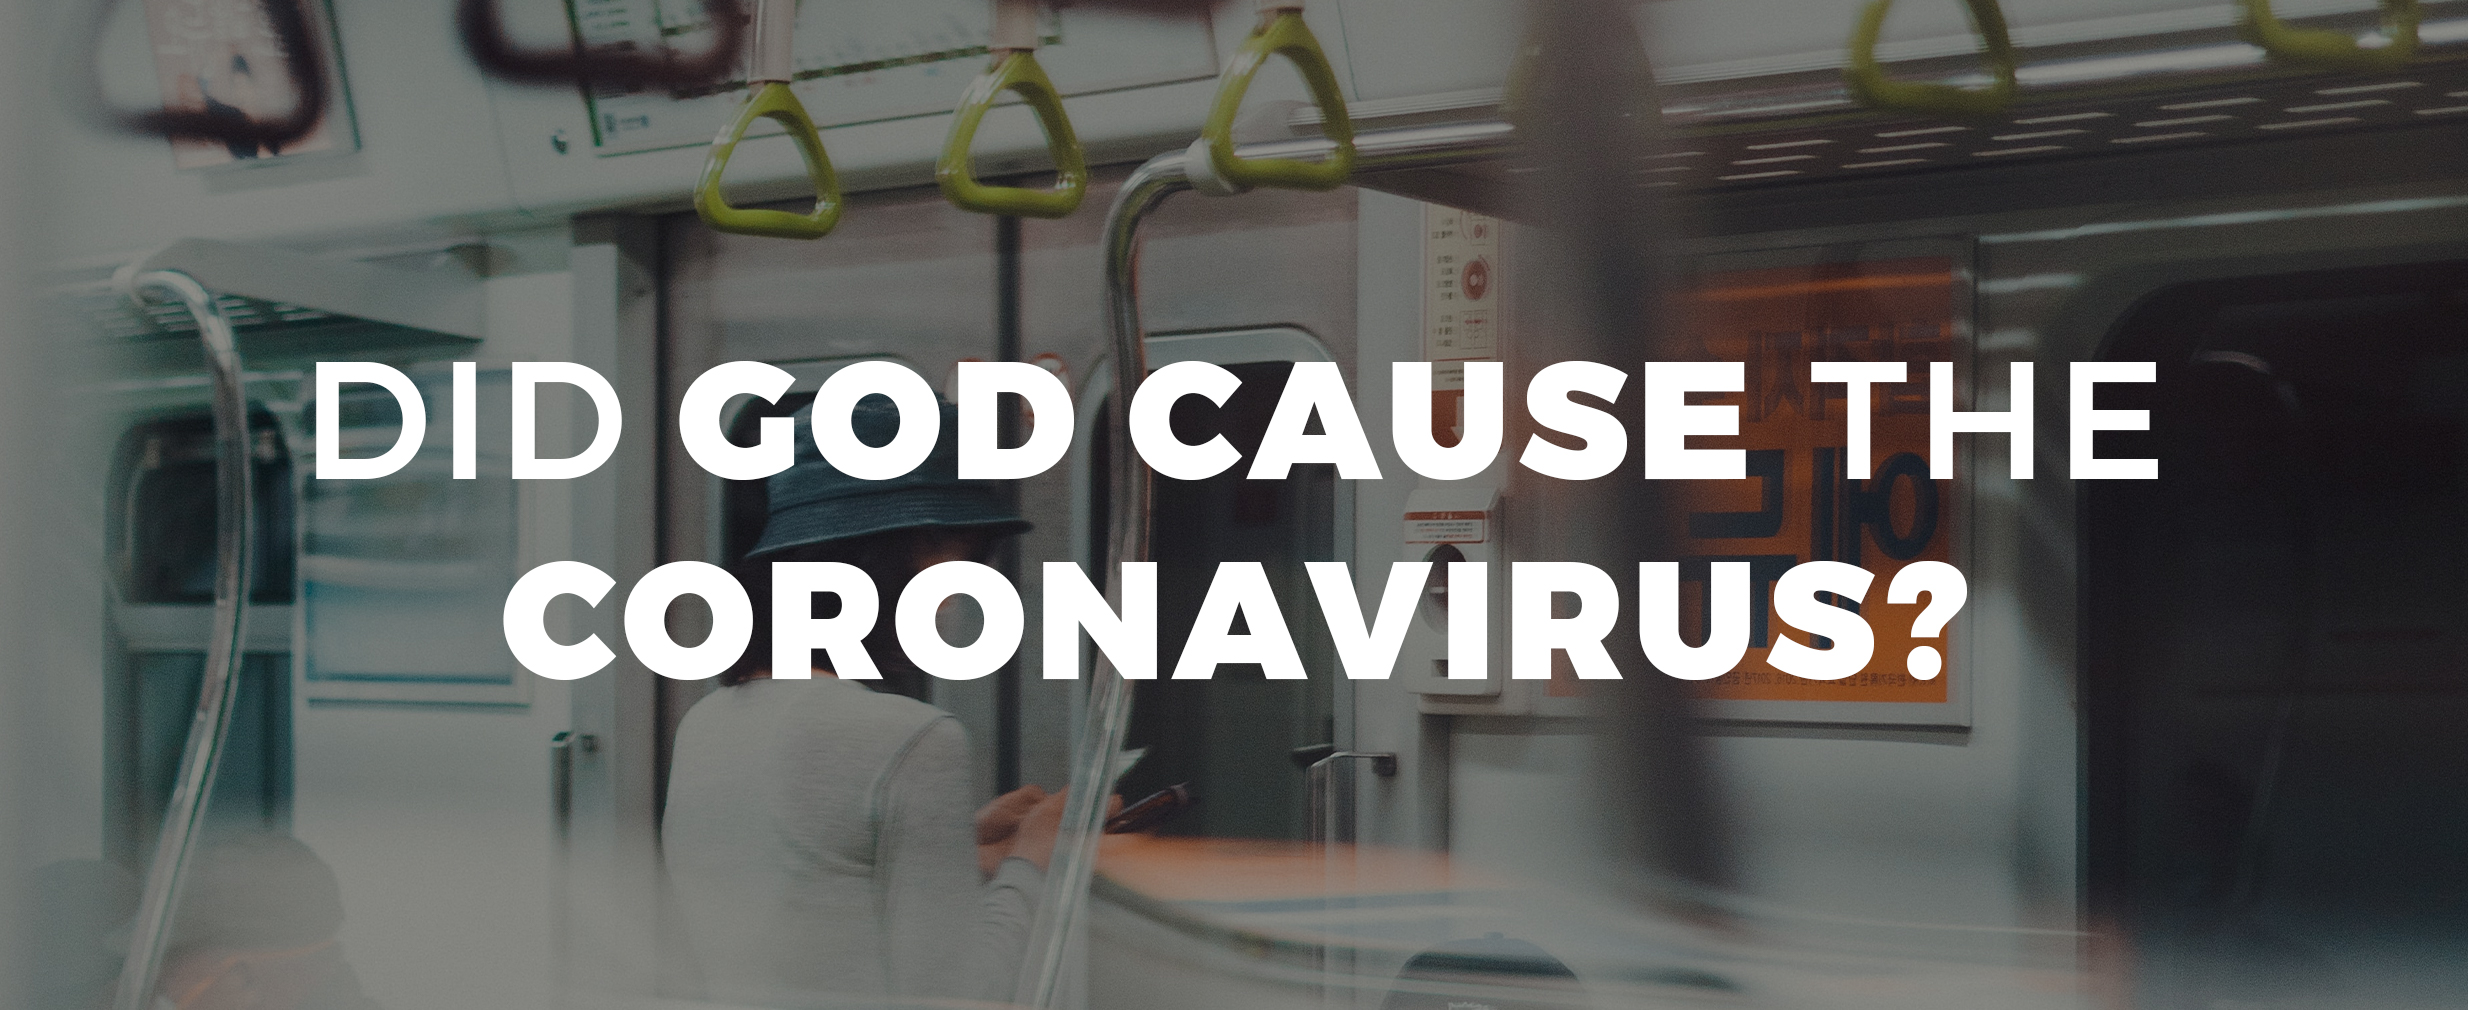 Did God Cause The Corona Virus?